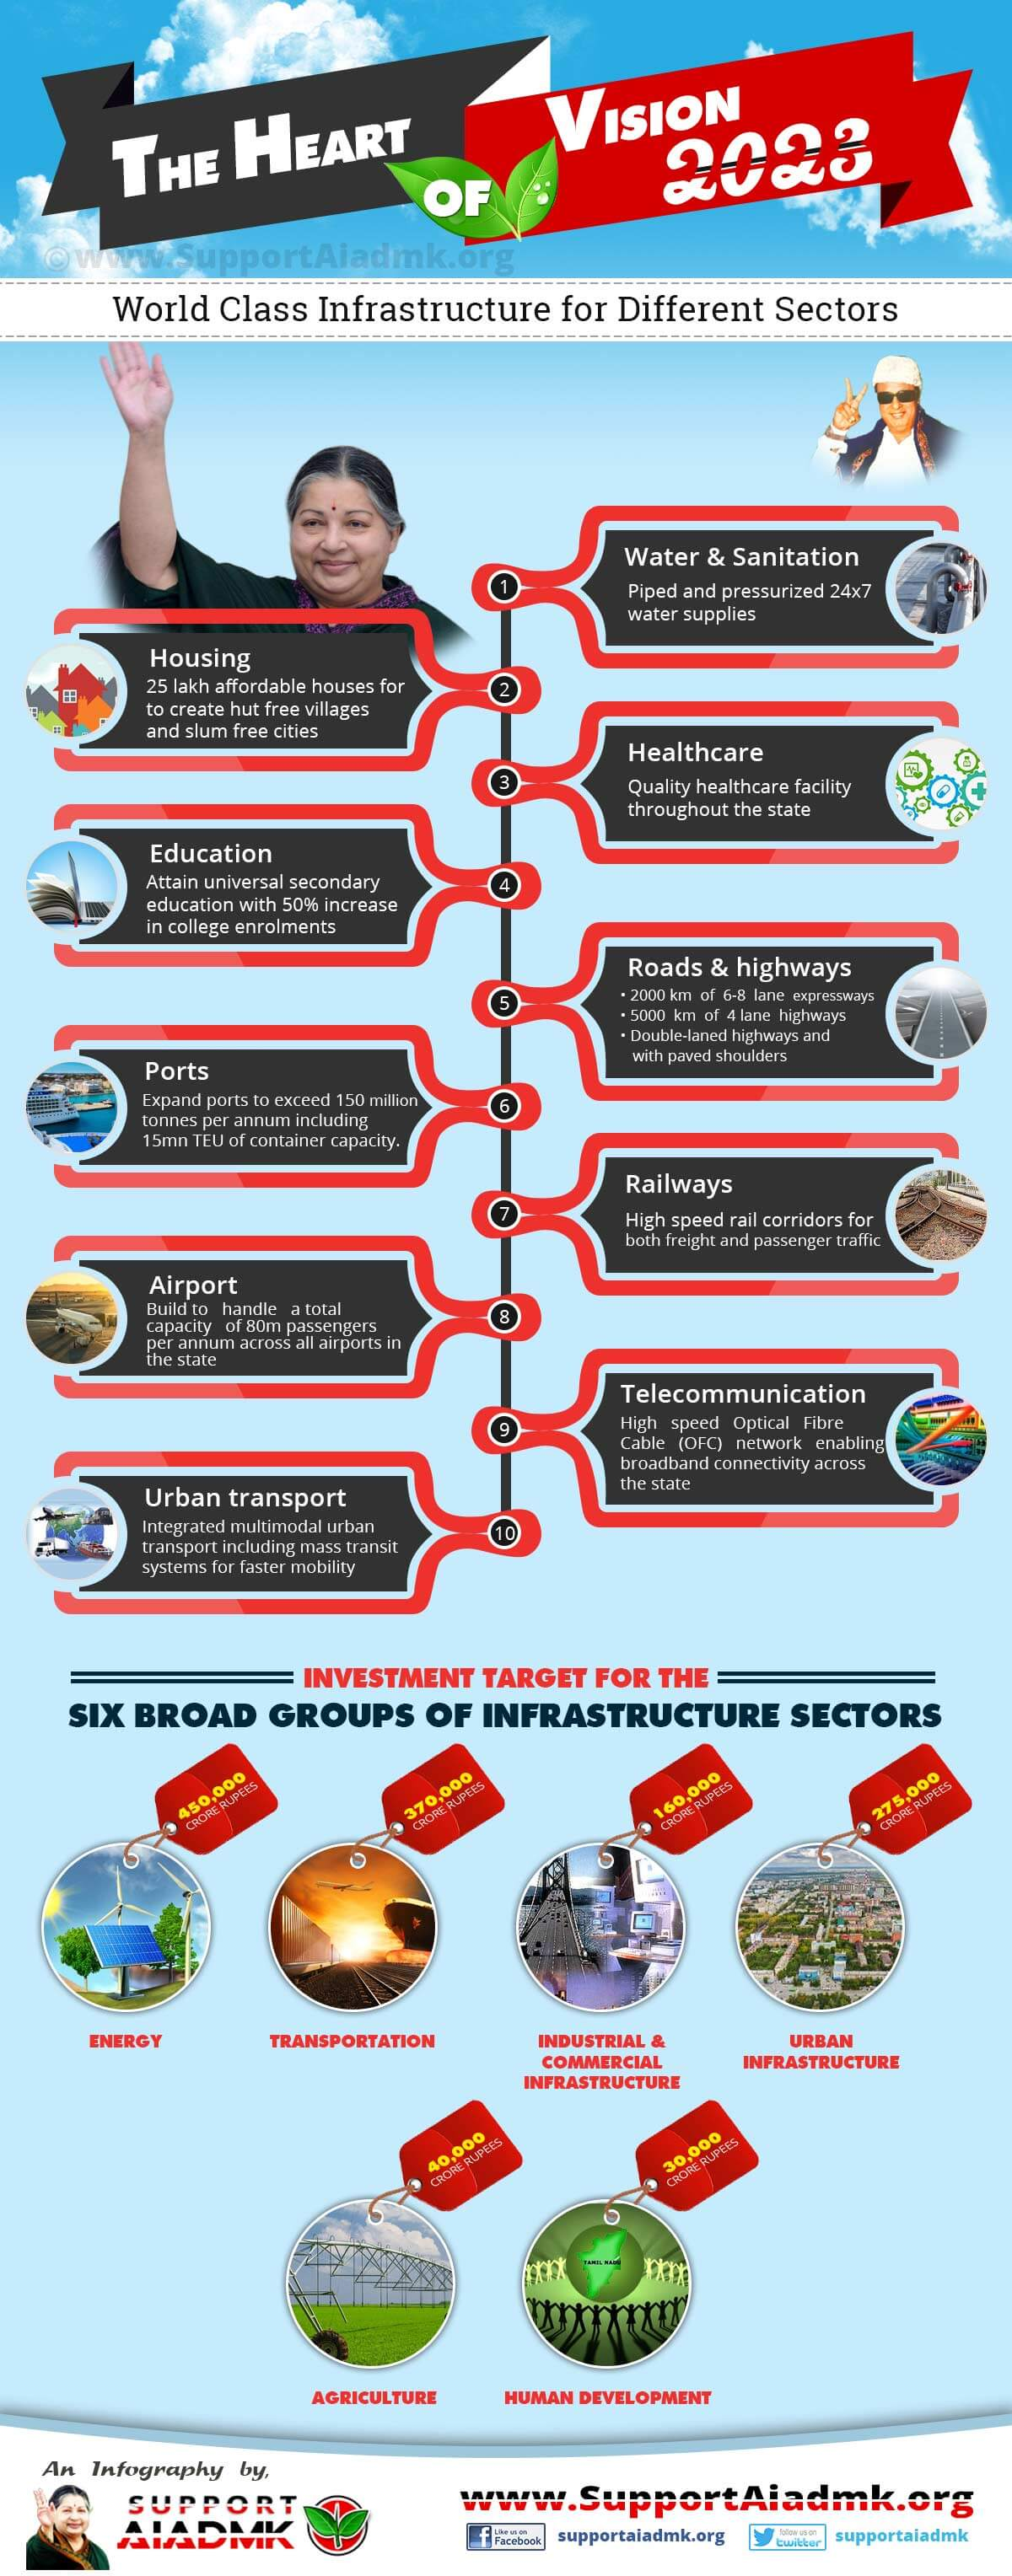 Infrastructural Development Plan 2023